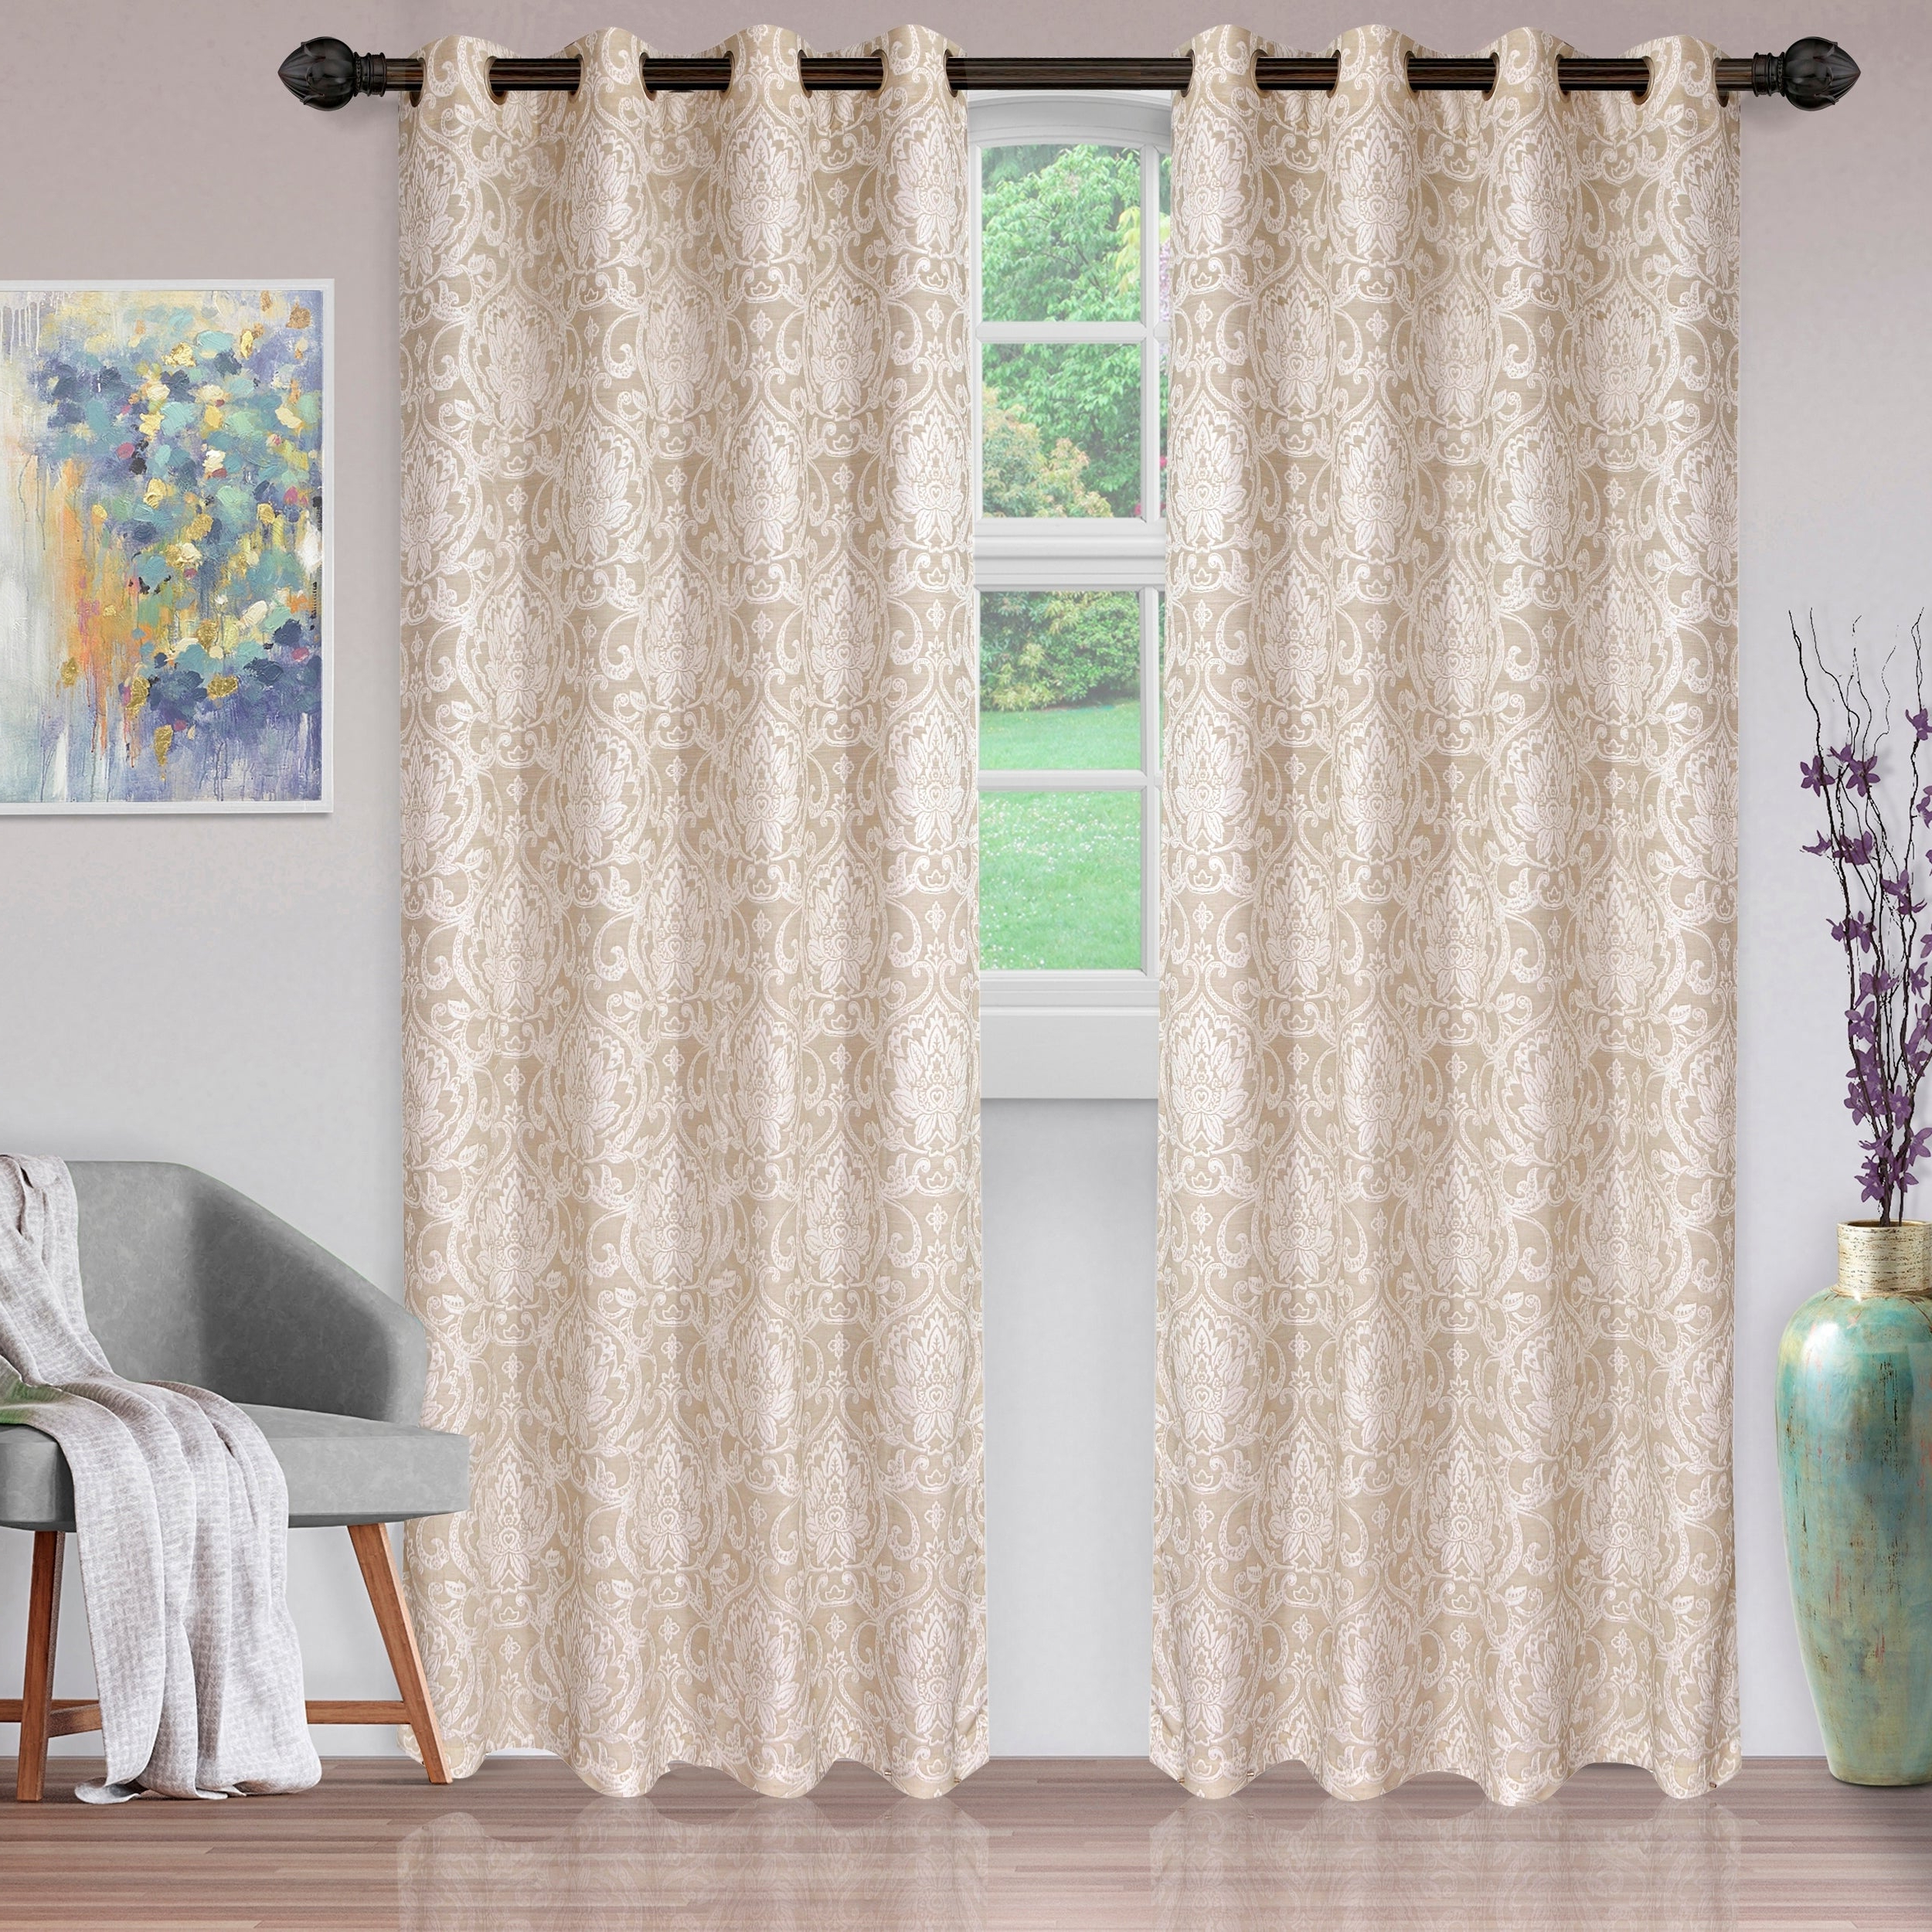 Miranda Haus Labrea Damask Jacquard Grommet Curtain Panels For Fashionable Miranda Haus Hinia Jacquard Grommet Curtain Panel (set Of 2) (View 13 of 20)